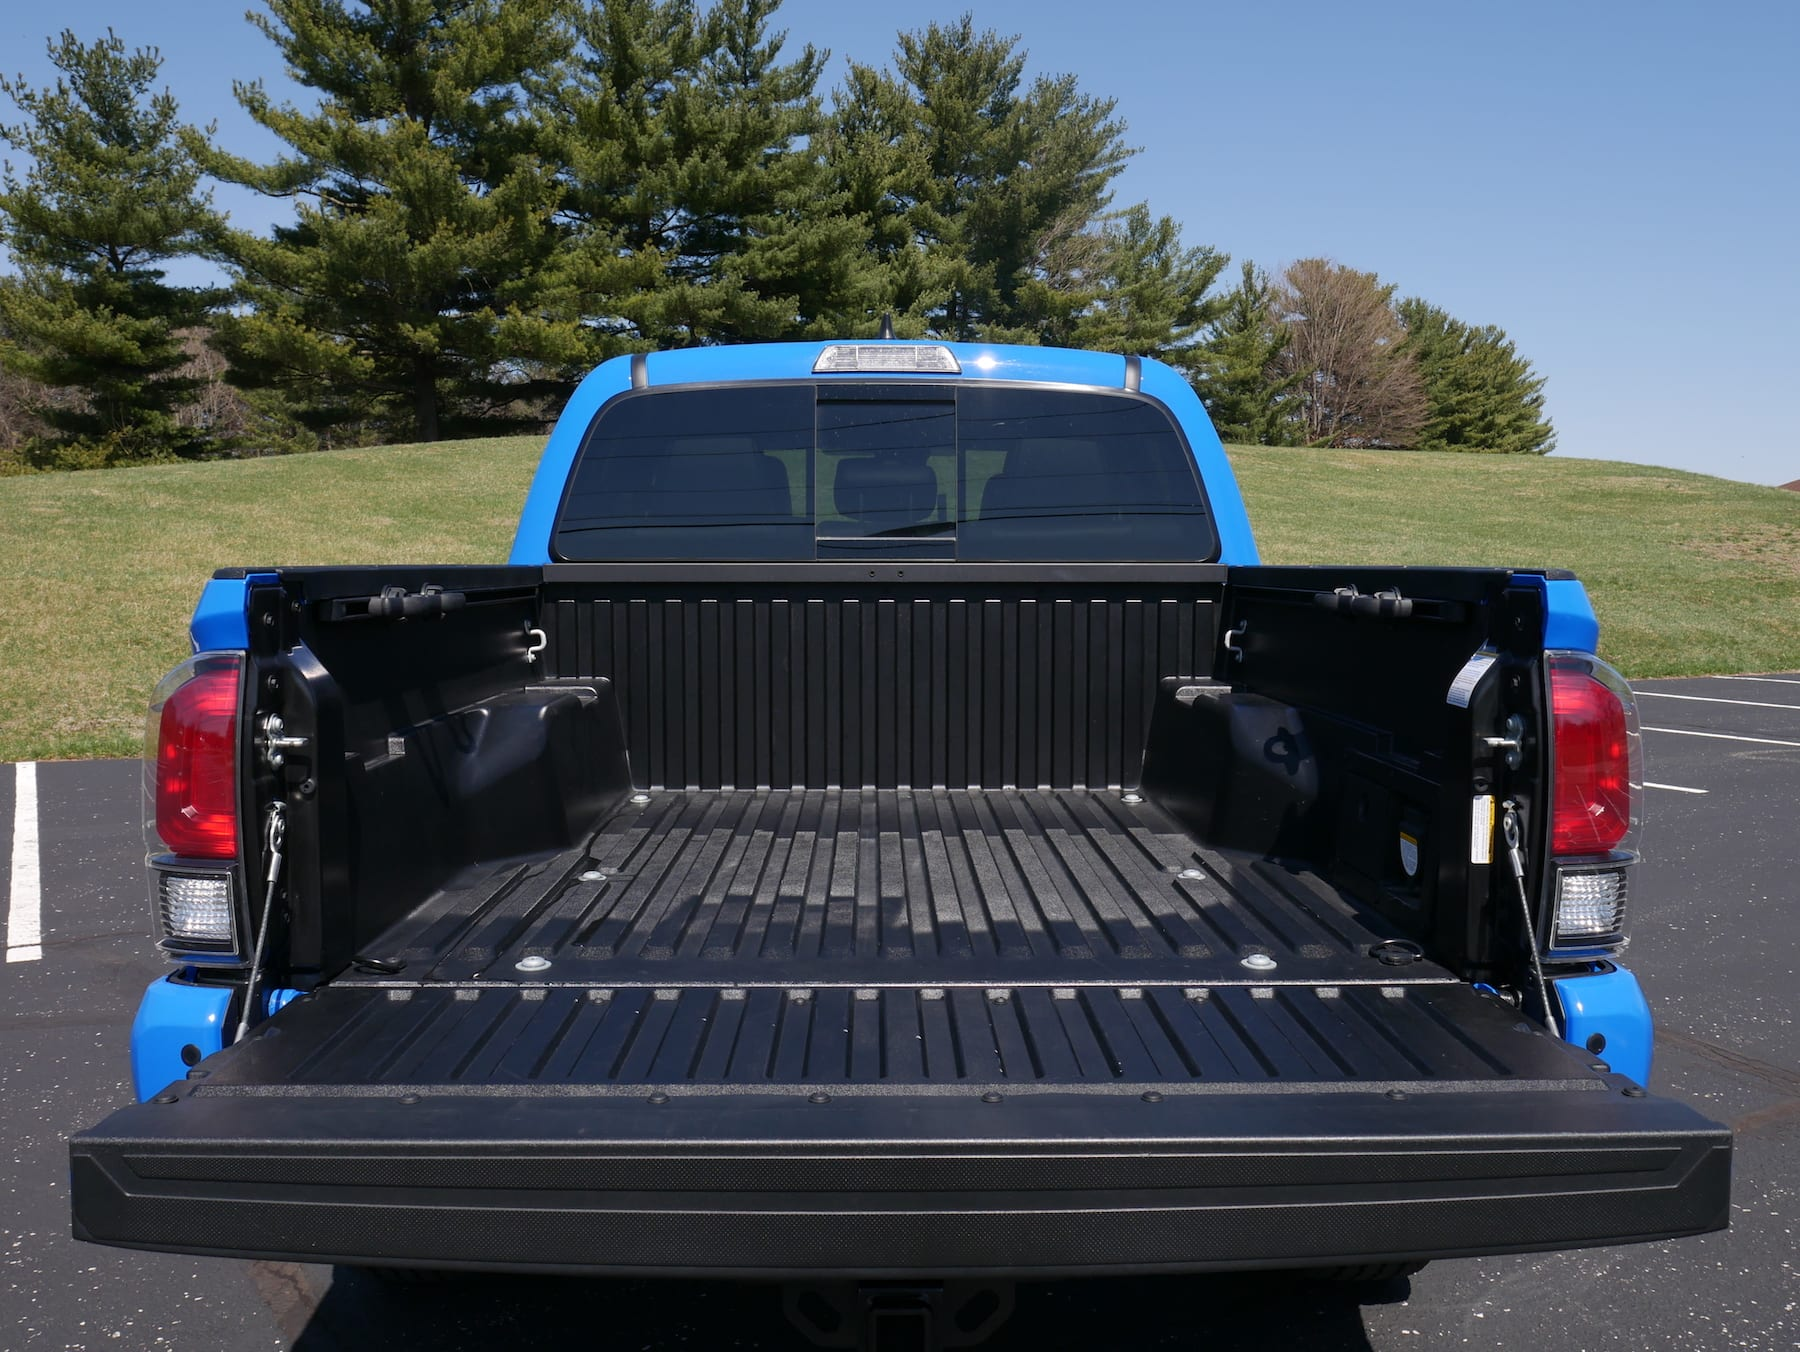 2019 Toyota Tacoma TRD Pro bed